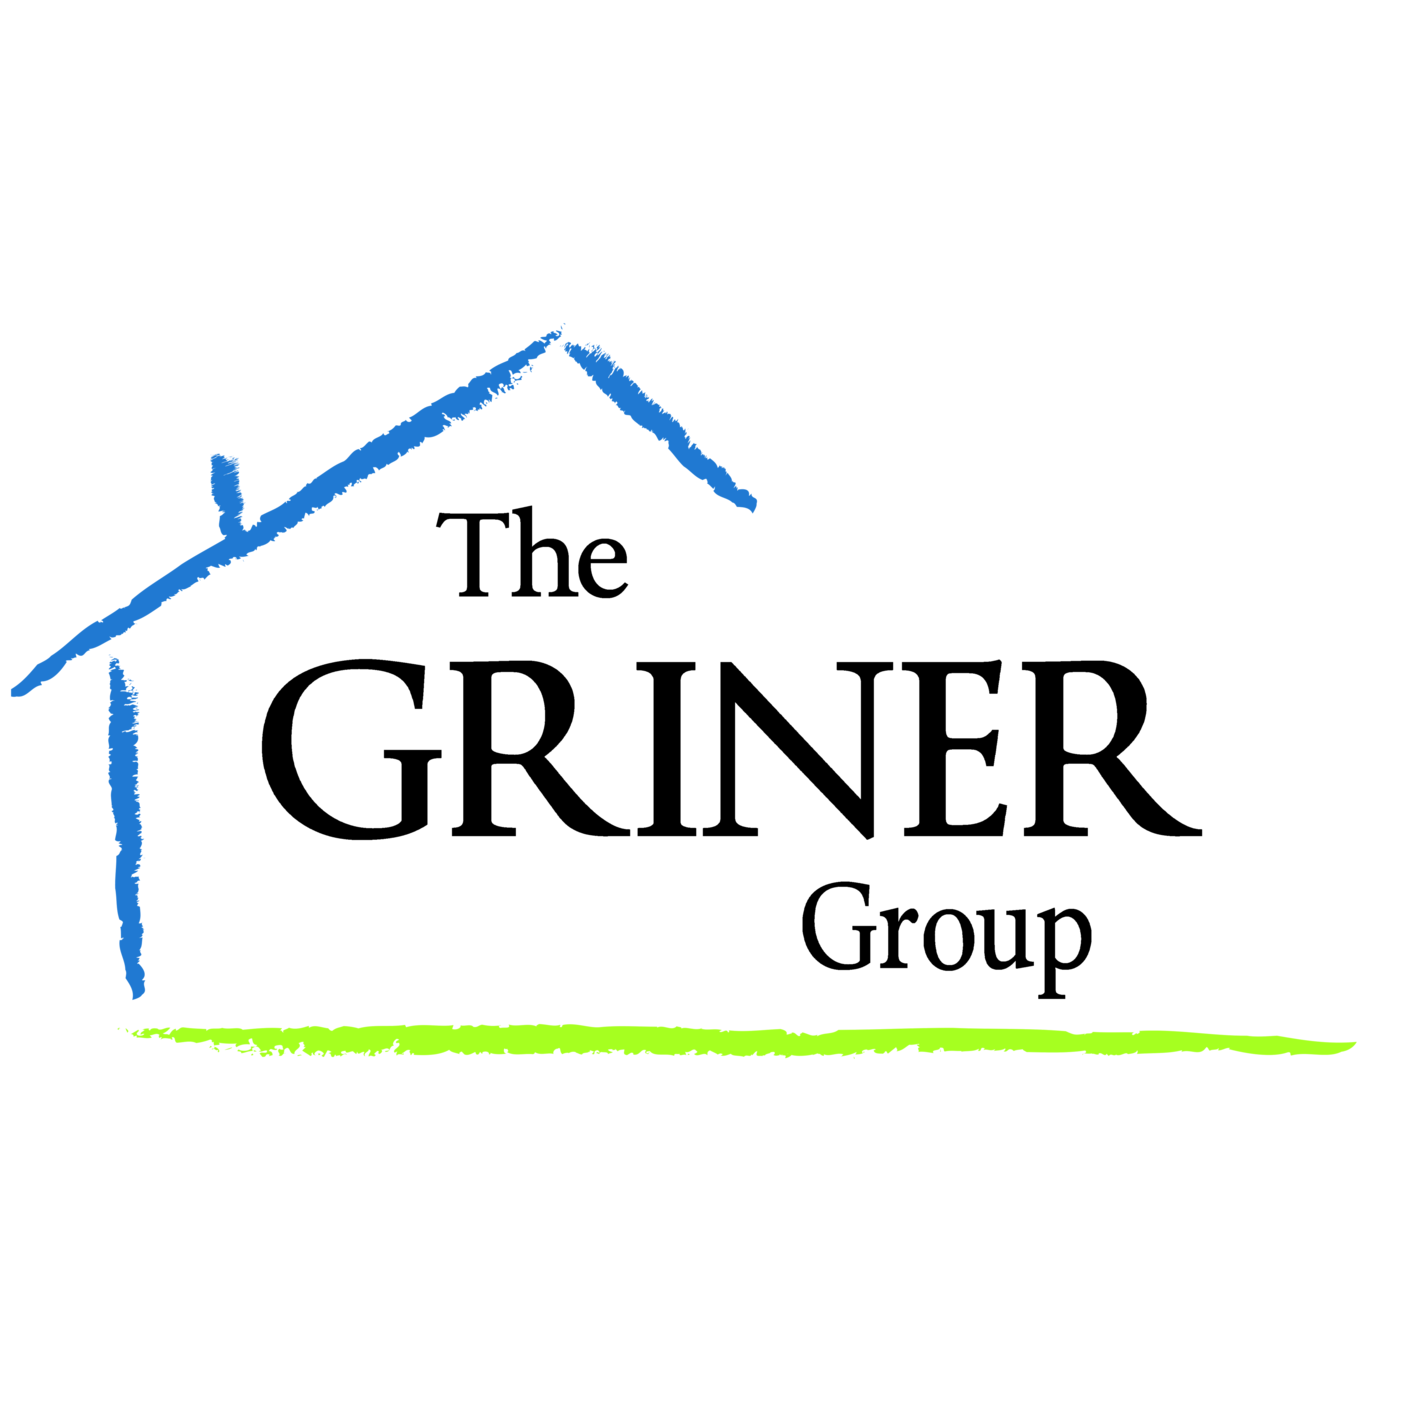 The Griner Group - Keller Williams Realty